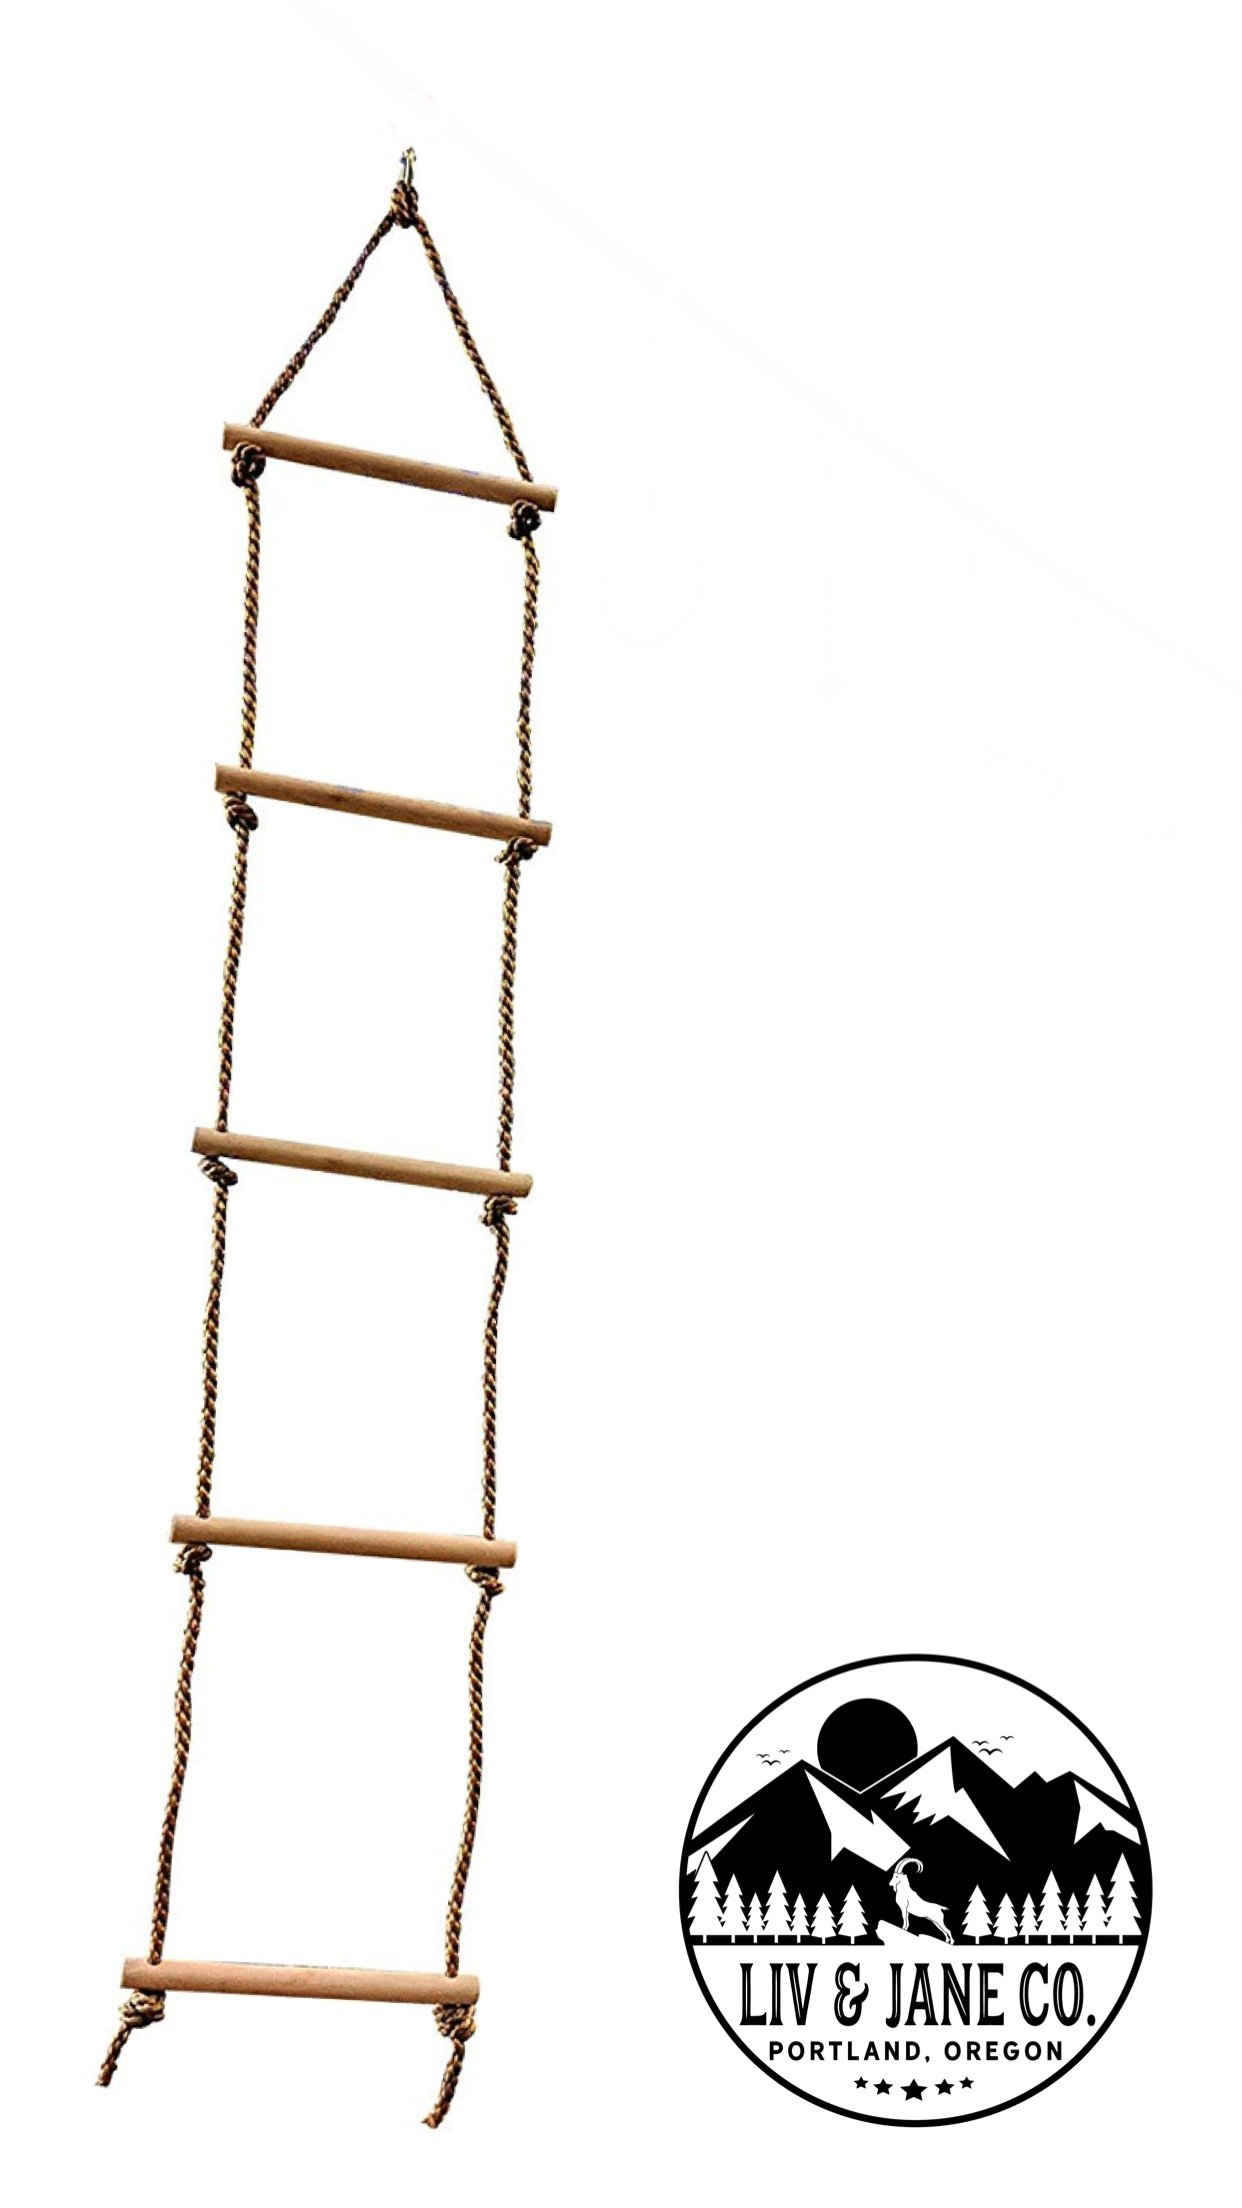 Rope Climbing Ladder - Ninja Training Line Attachment - Obstacle Course Accessory